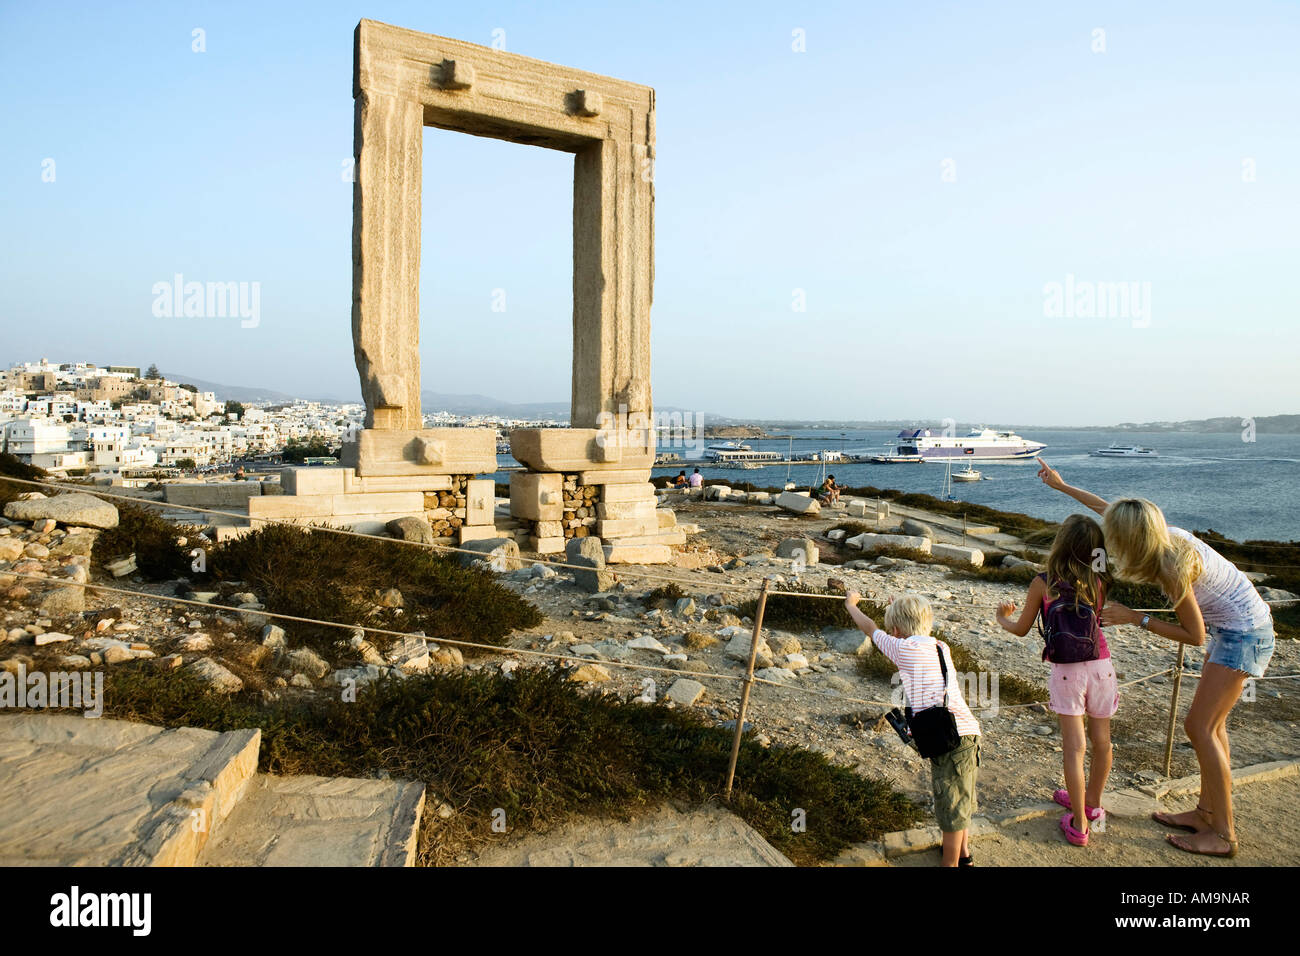 Woman with young boy and young girl pointing at the Portara in Greece with tourists in background. Stock Photo